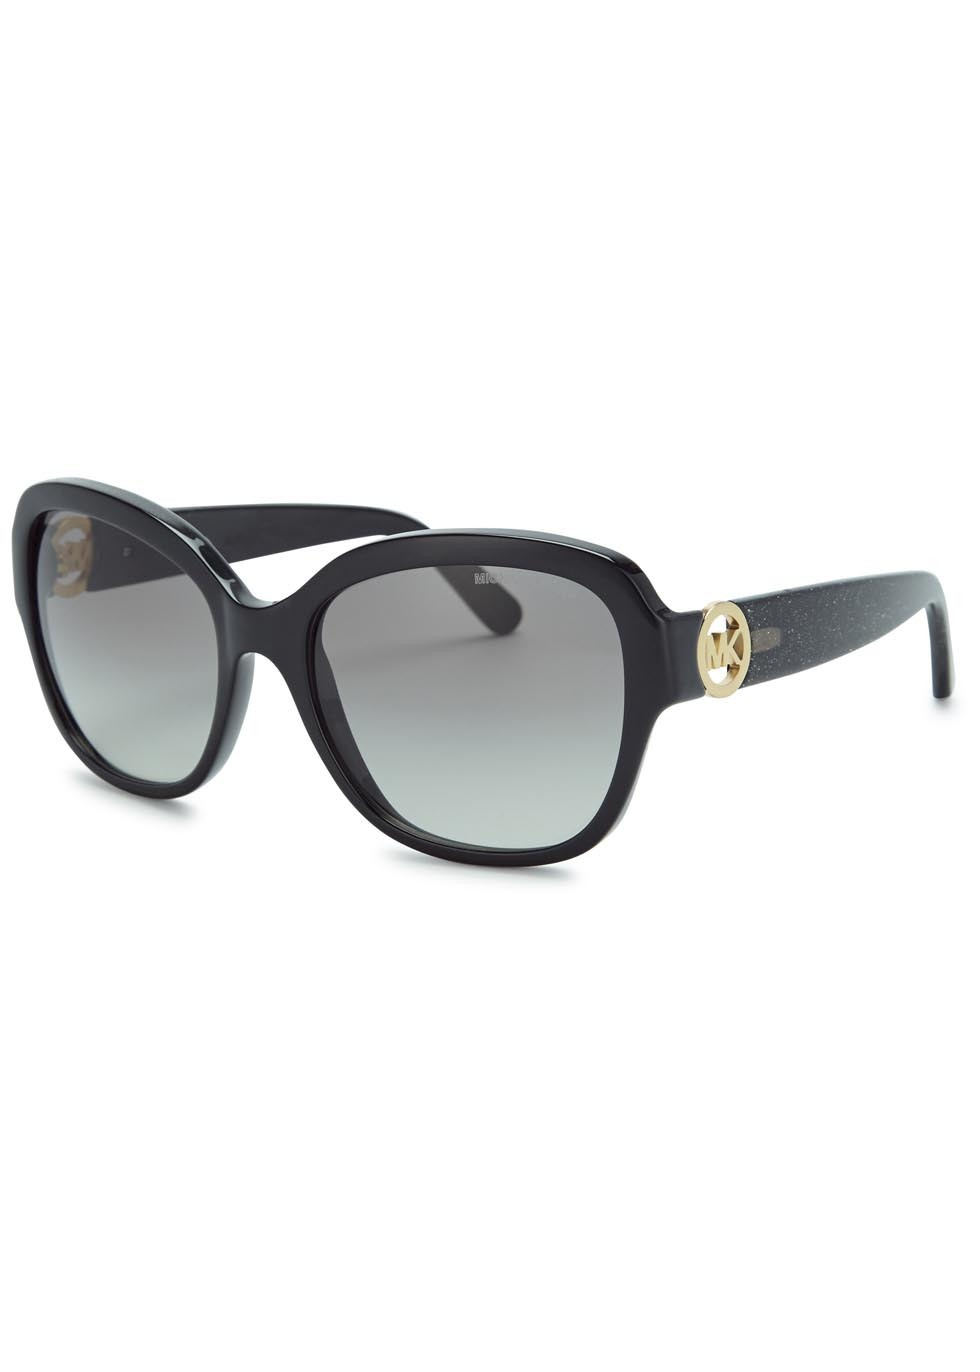 Black Oval Frame Sunglasses - secondary colour: gold; predominant colour: black; occasions: casual, holiday; style: round; size: large; material: plastic/rubber; pattern: plain; finish: plain; embellishment: charms; season: a/w 2015; wardrobe: basic